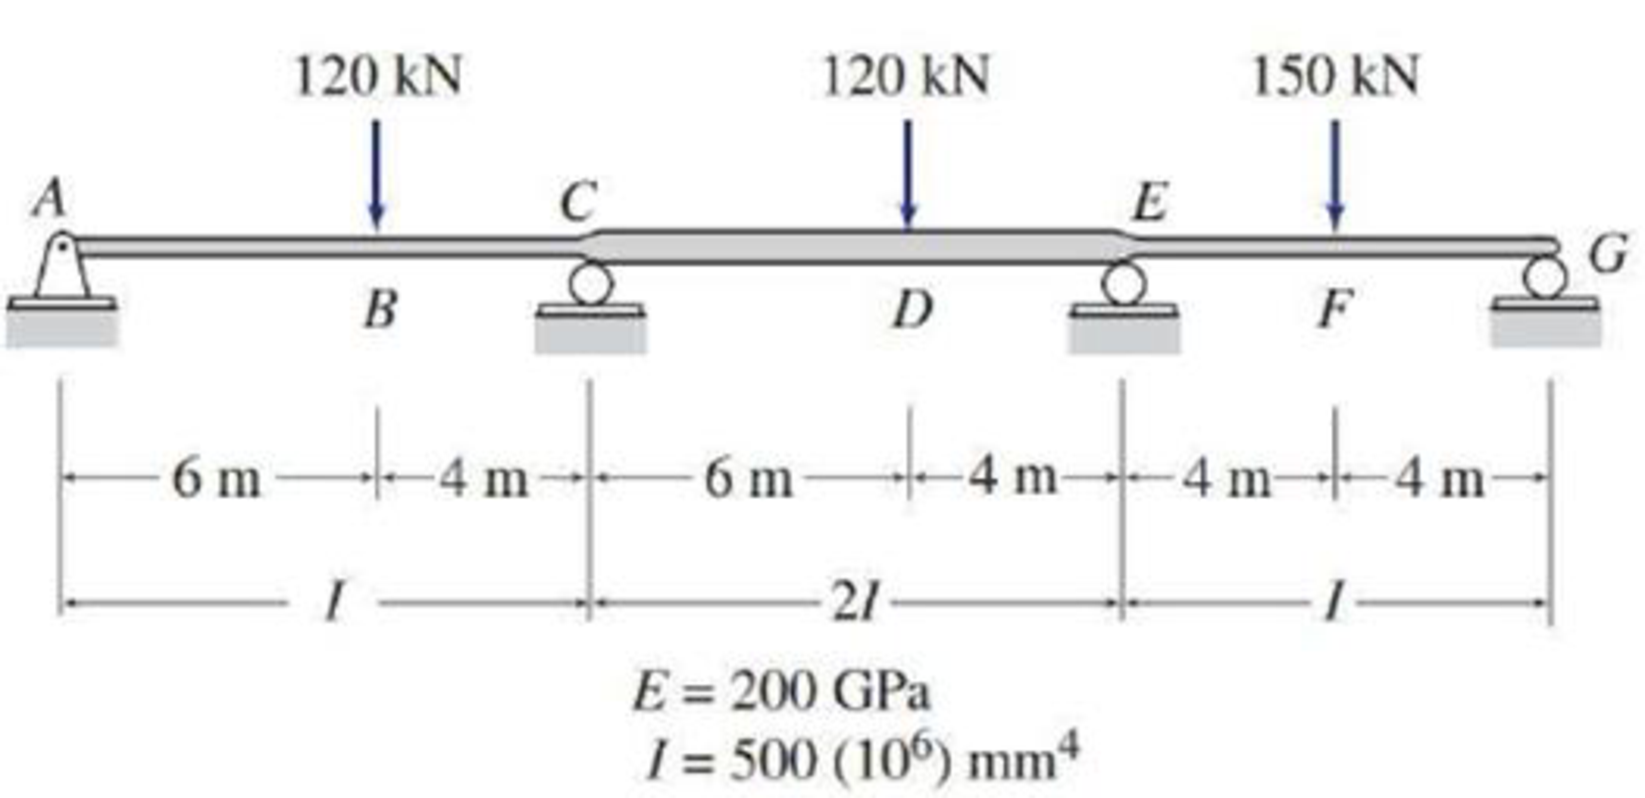 Chapter 13, Problem 39P, 13.37 through 13.45 Determine the reactions and draw the shear bending moment diagrams for the